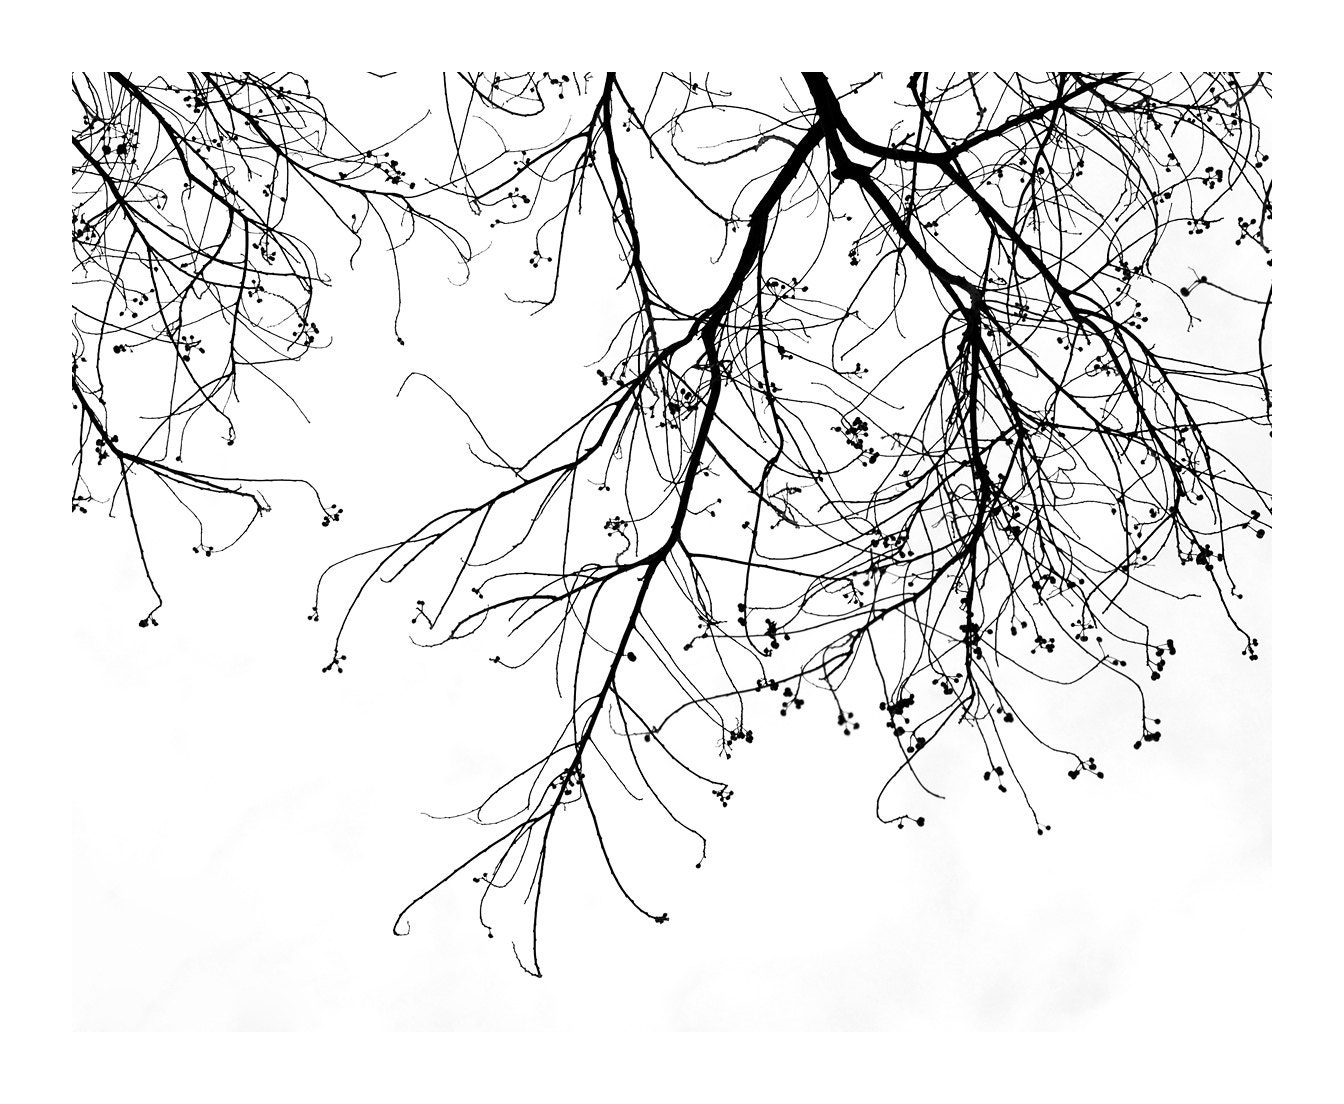 Branches and Seeds, no 8, black and white nature photograph, winter season 8x10 print - imagadikt